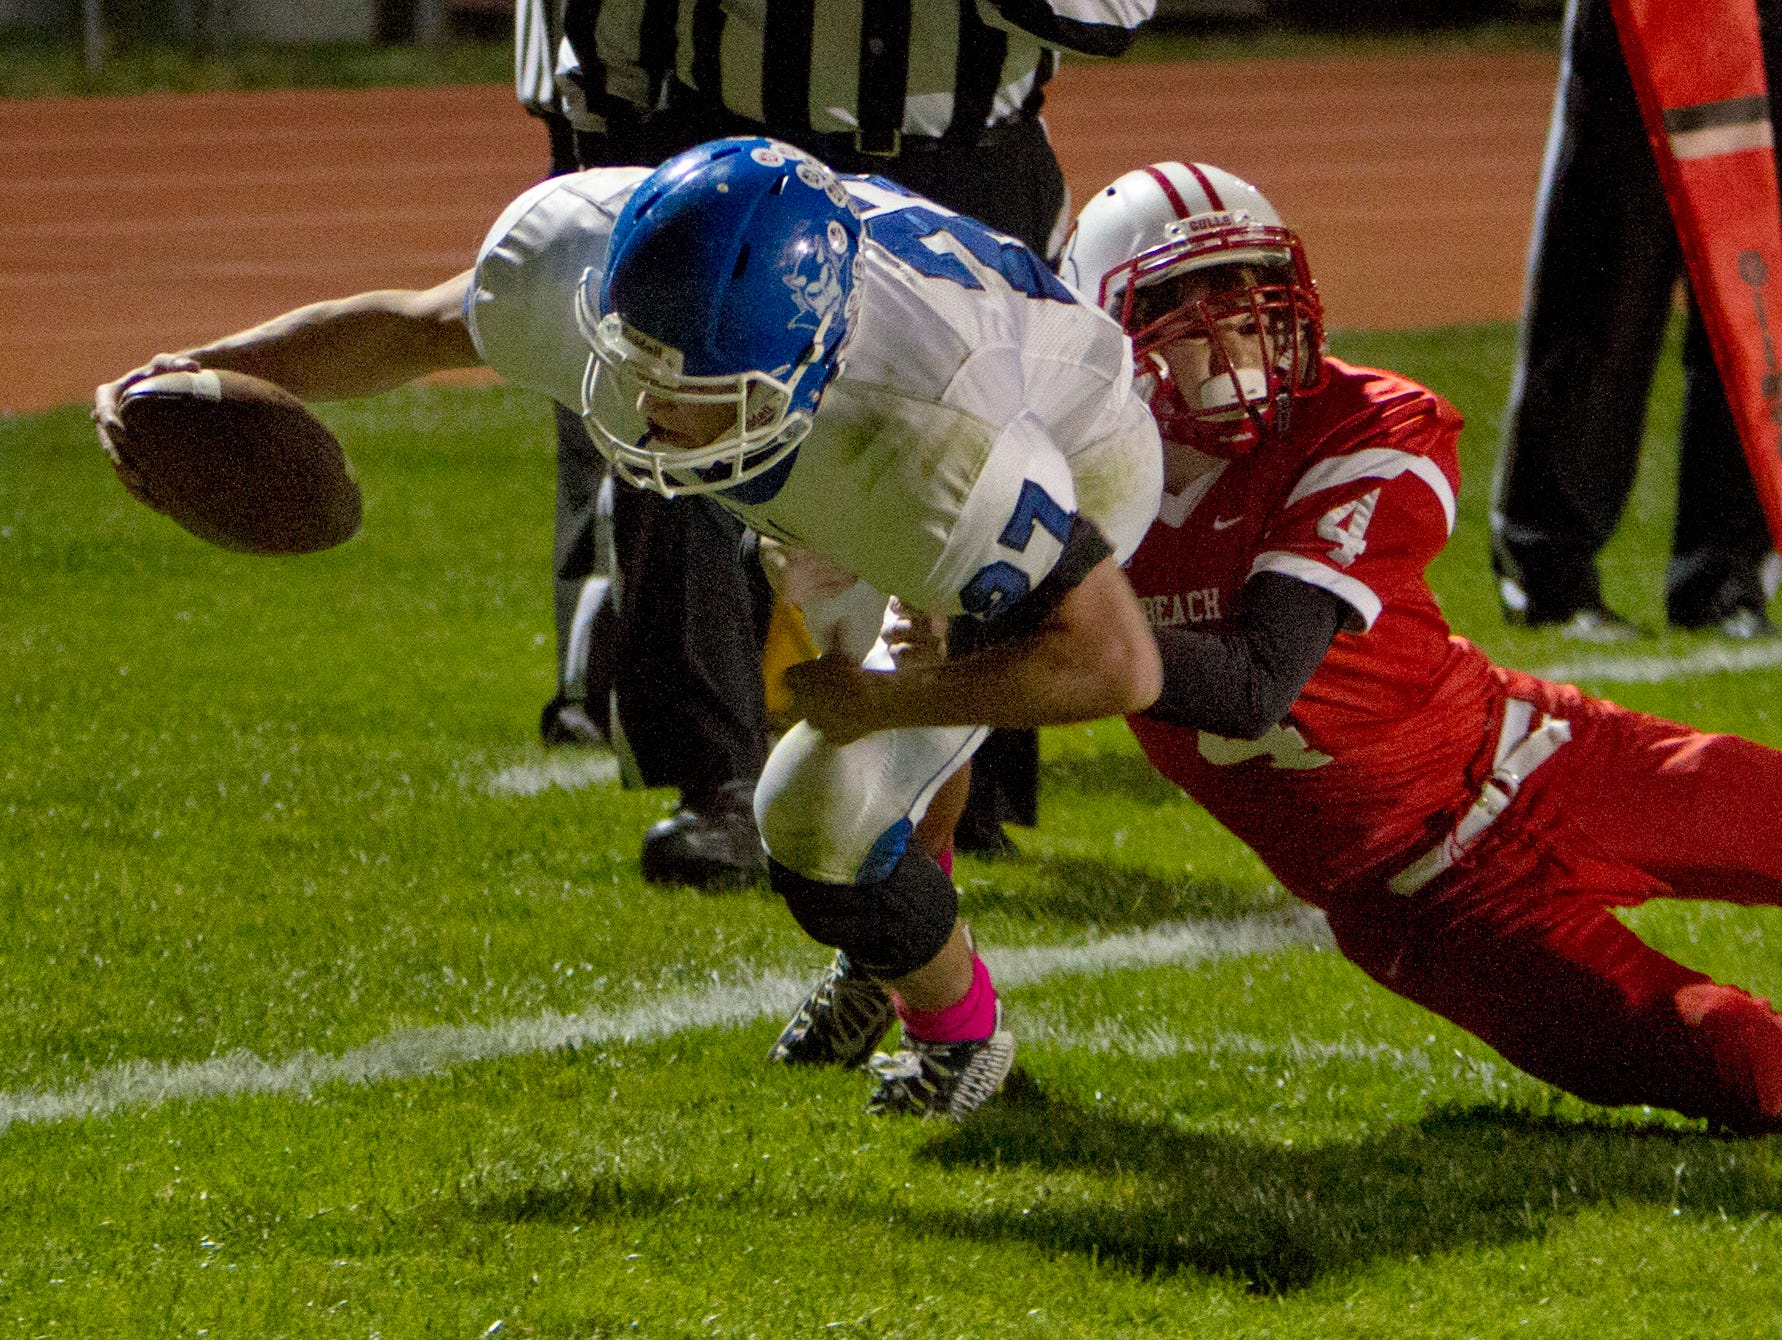 Shore Regional's Jack Britton stretches out but can't quite got to the goal line as Pt Beach's Josh Yates hangs on to him, but did pick up yards that let his team score a second time two plays later. Shore Regional football vs Point Pleasant Beach in Point Pleasant Beach on October 30, 2015.